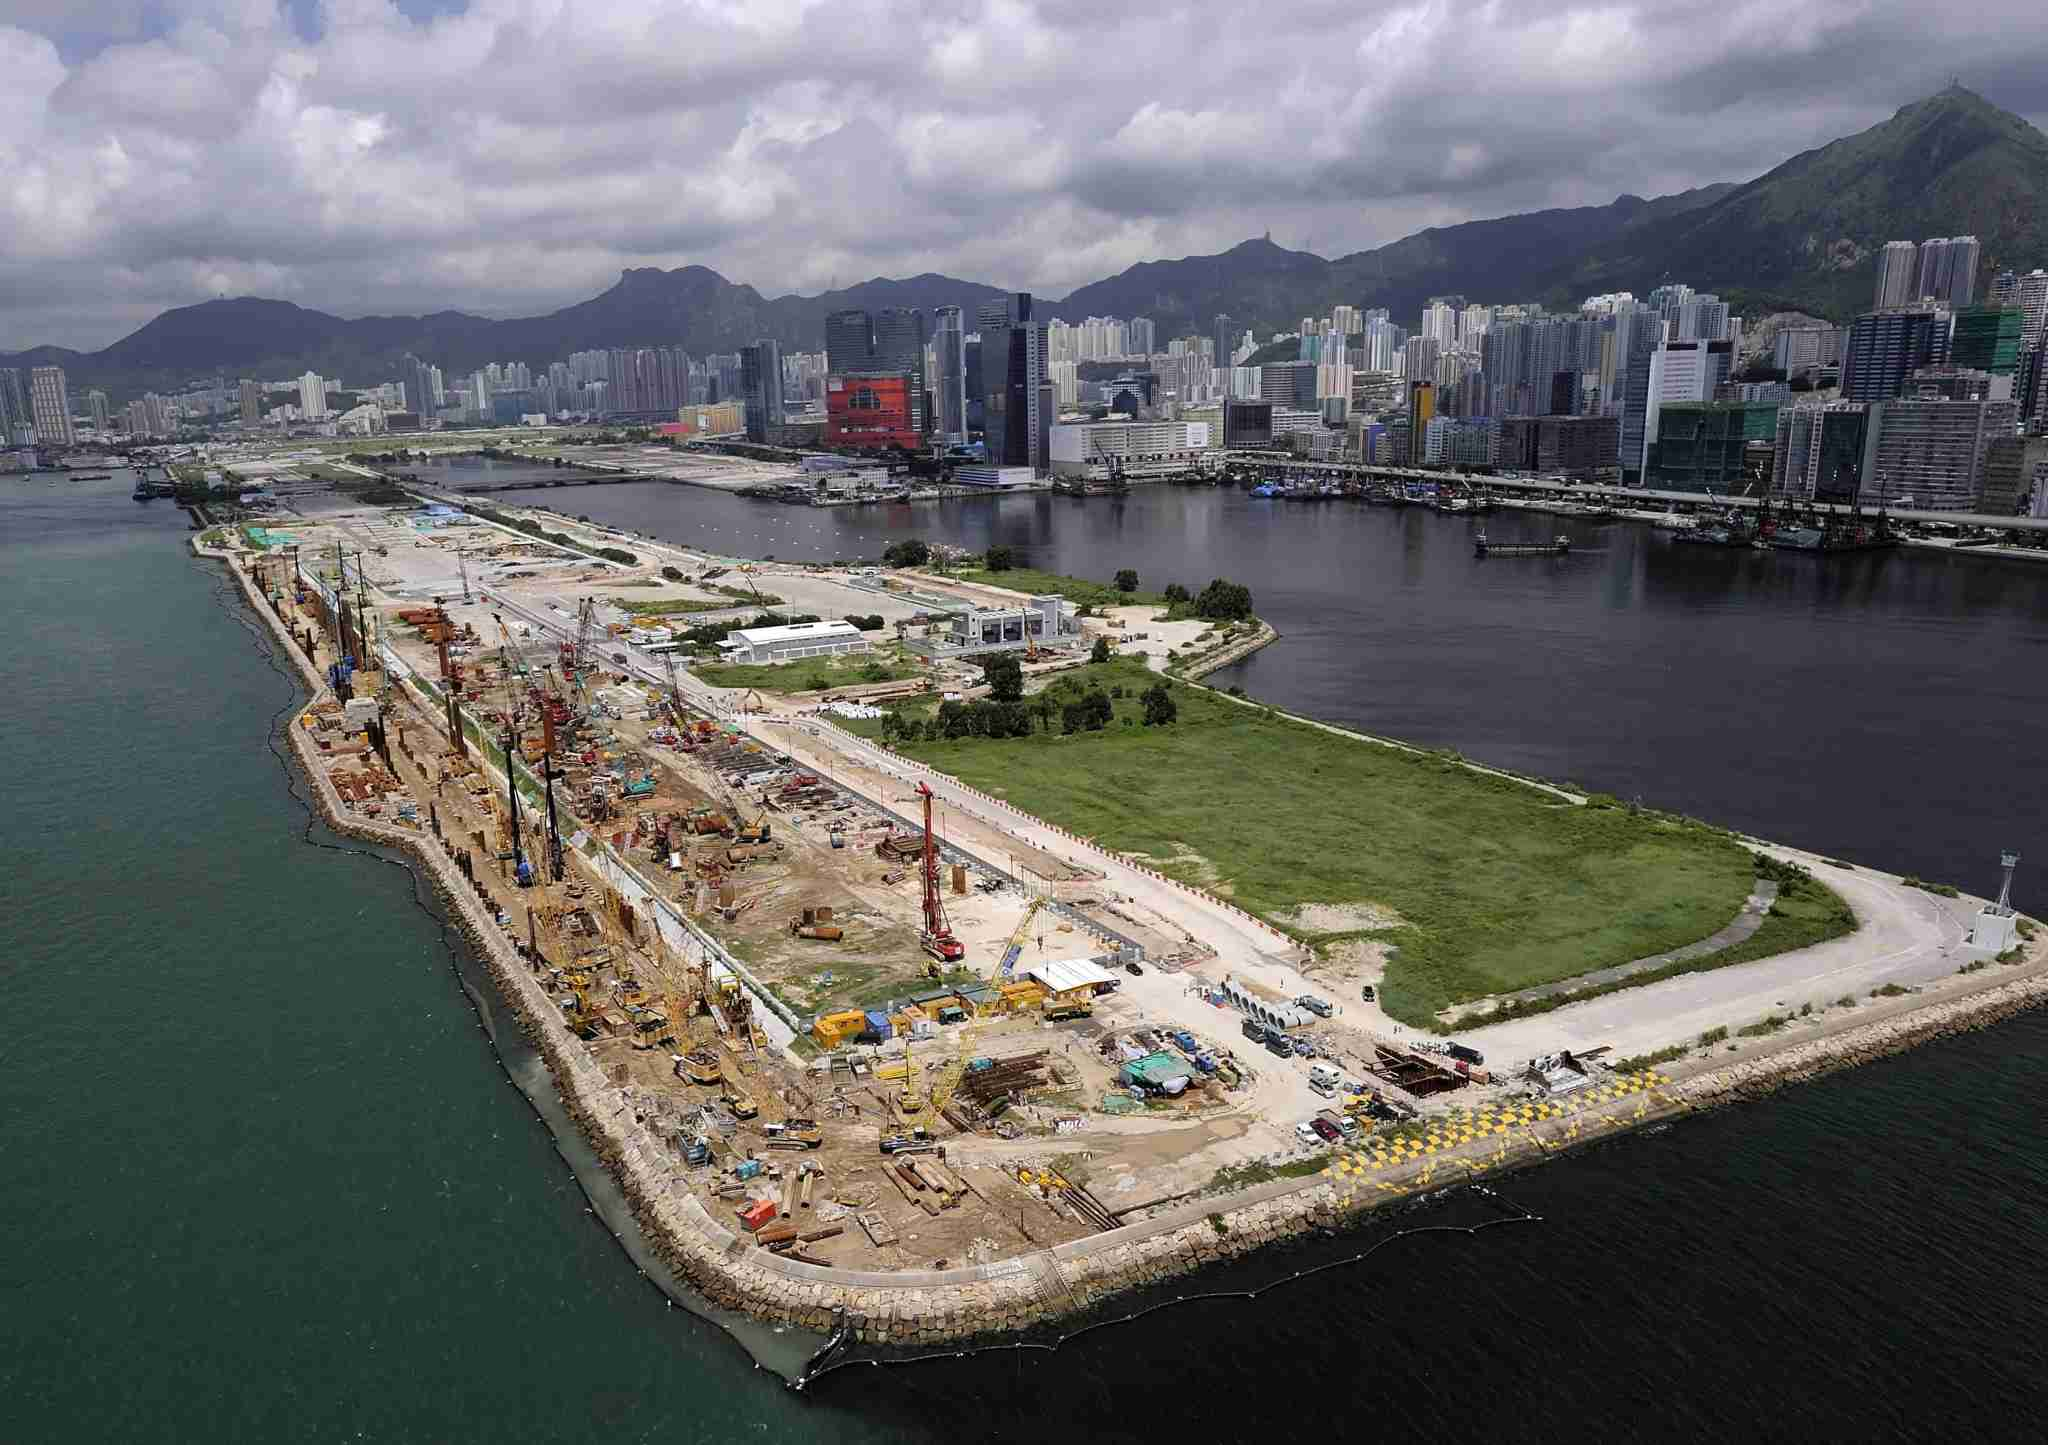 HONG KONG, CHINA - SEPTEMBER 7: Construction site of the Kai Tak Cruise Terminal Building on September 7, 2010 in Hong Kong, China. The new cruise terminal, located at Victoria Harbor, will be able to berth the largest cruise vessels in the world. (Photo by XINHUA/Gamma-Rapho via Getty Images)